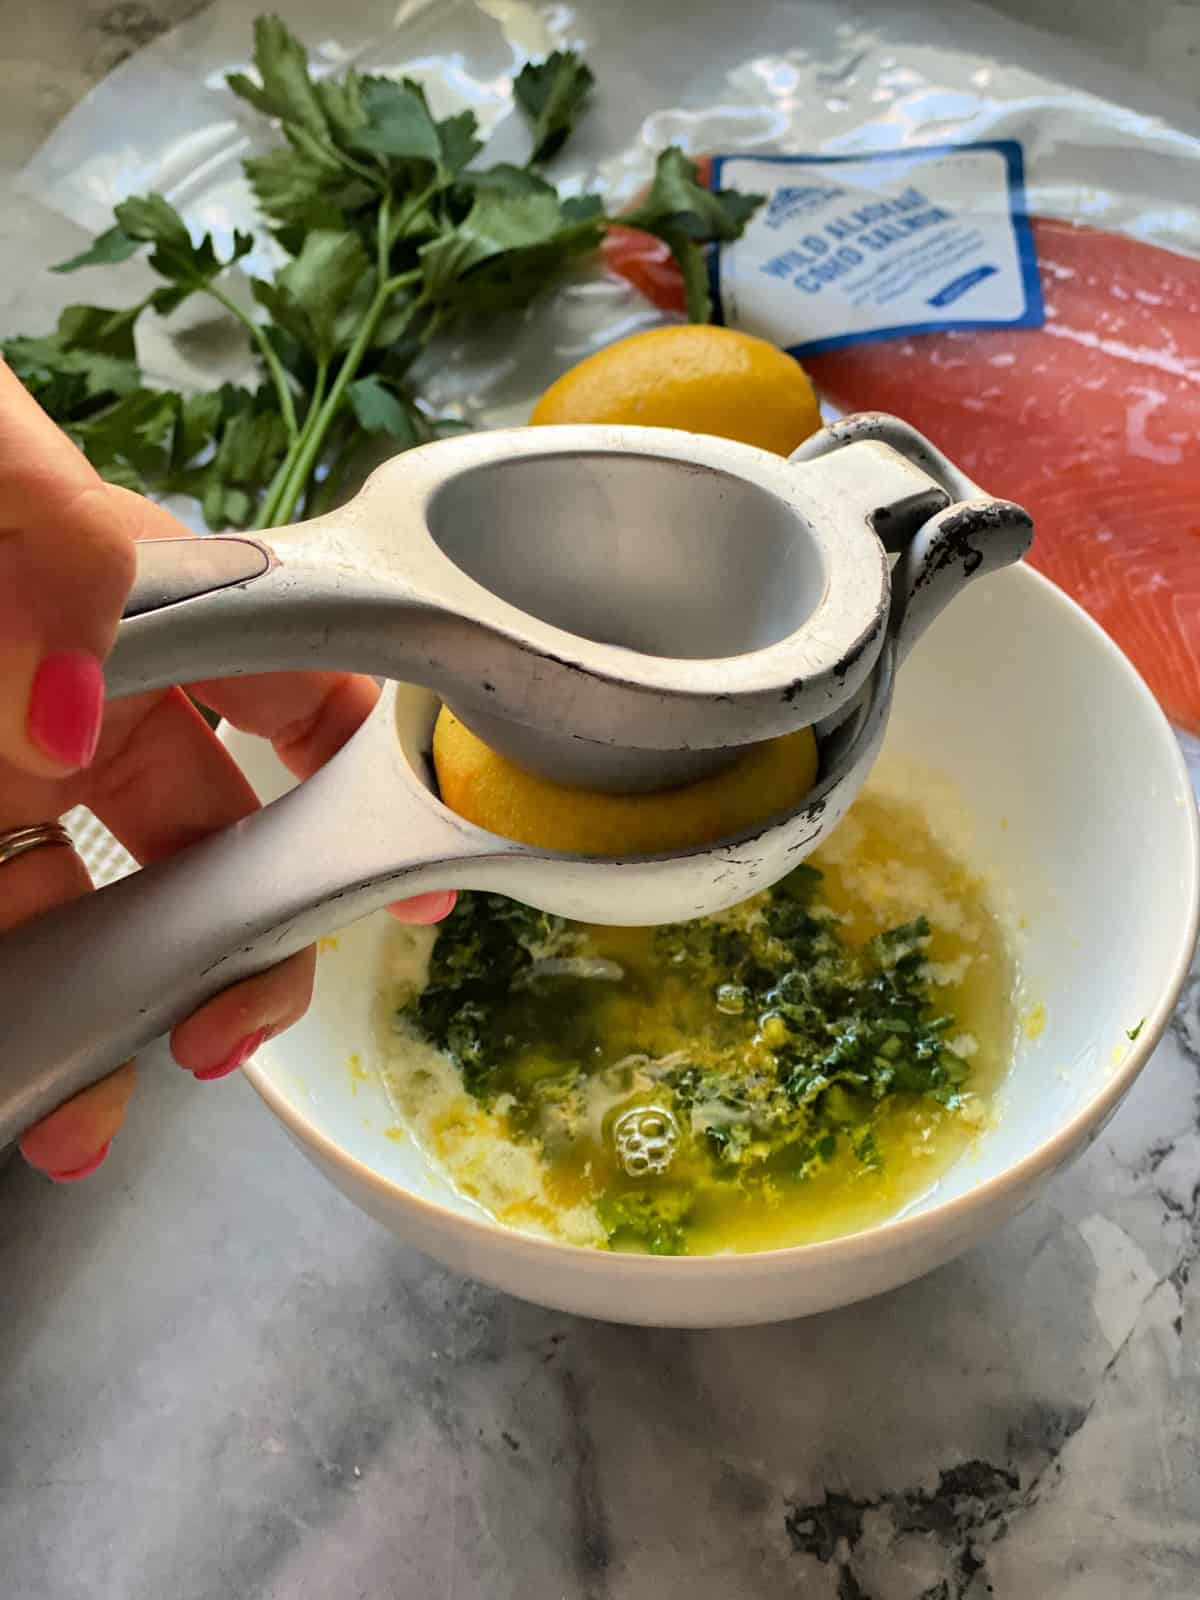 Hand using press to juice lemon into bowl with butter and parsley next to package of salmon.